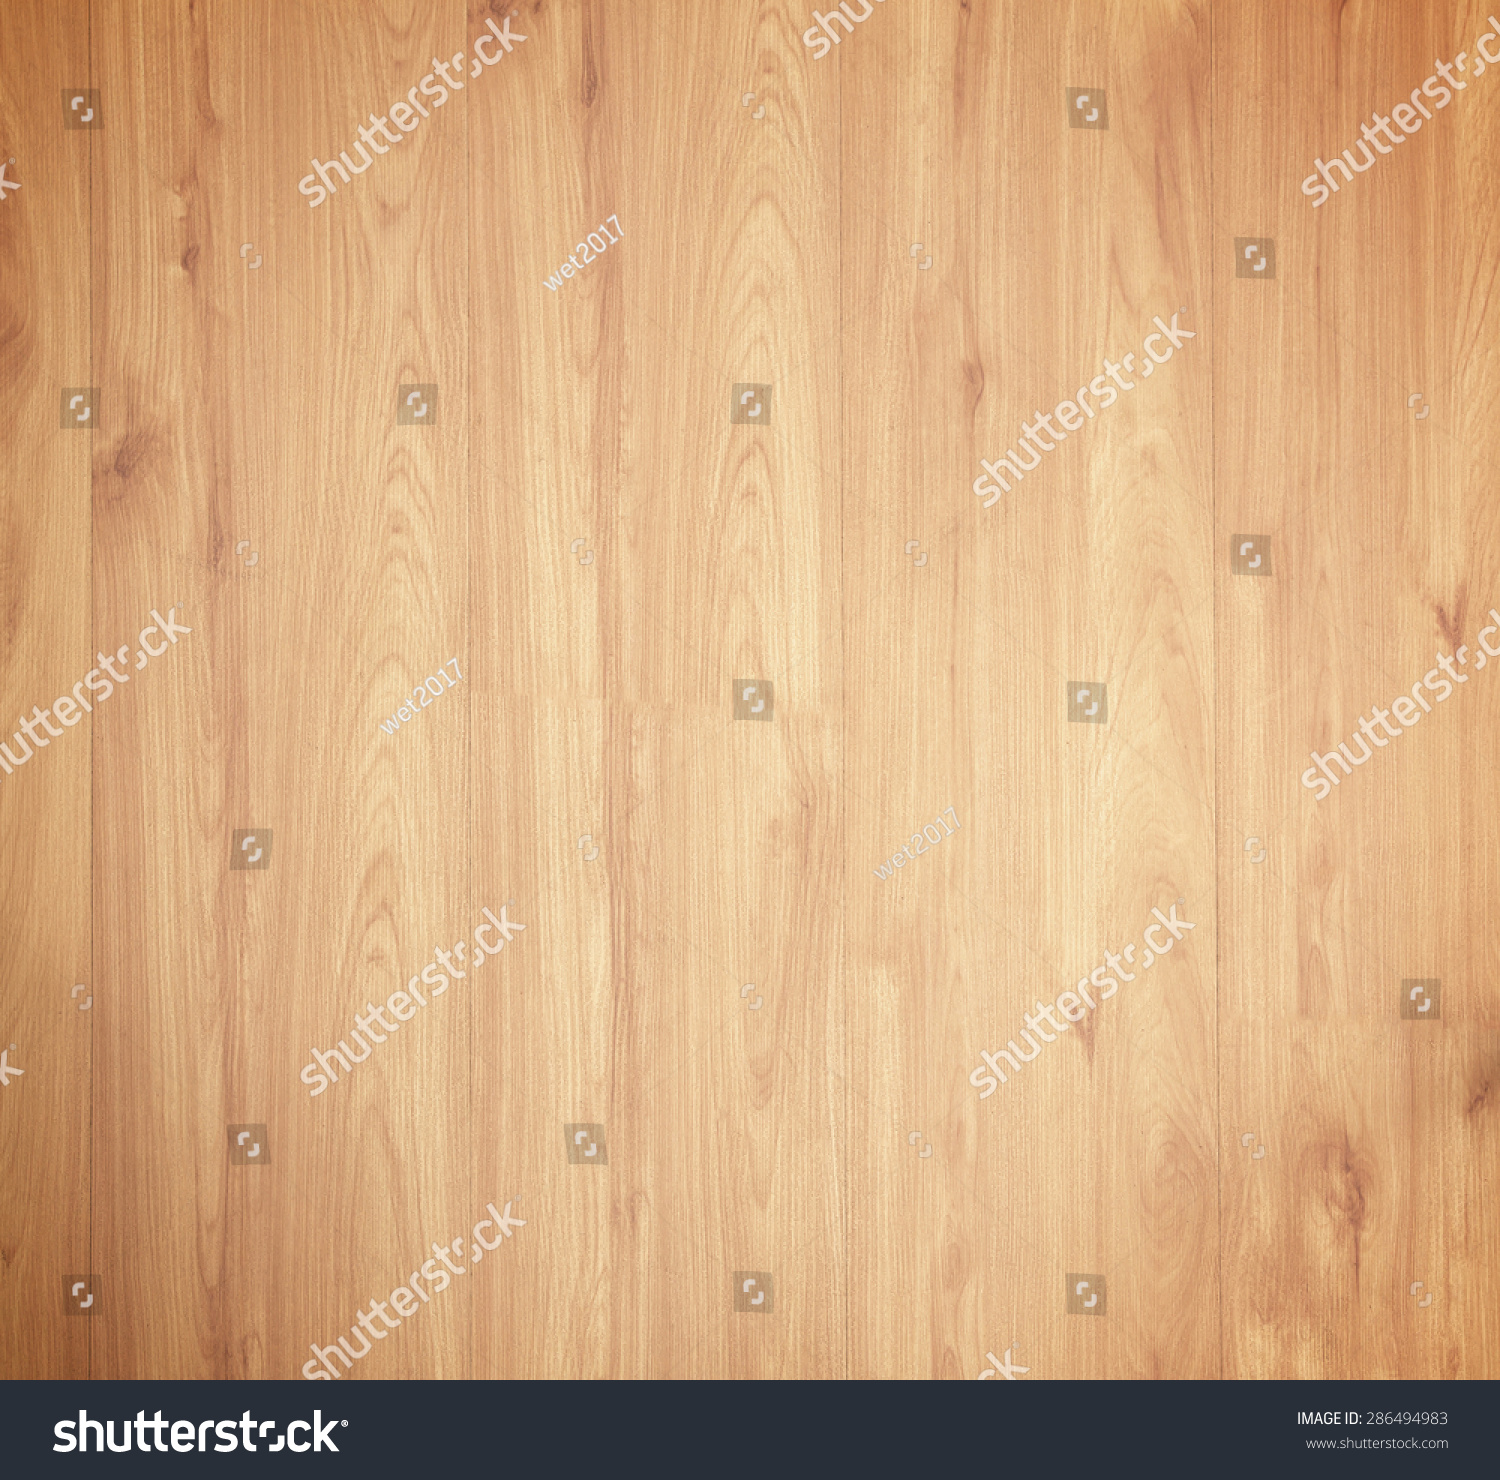 court of the types com different basketball are what floor floors surfaces article livestrong